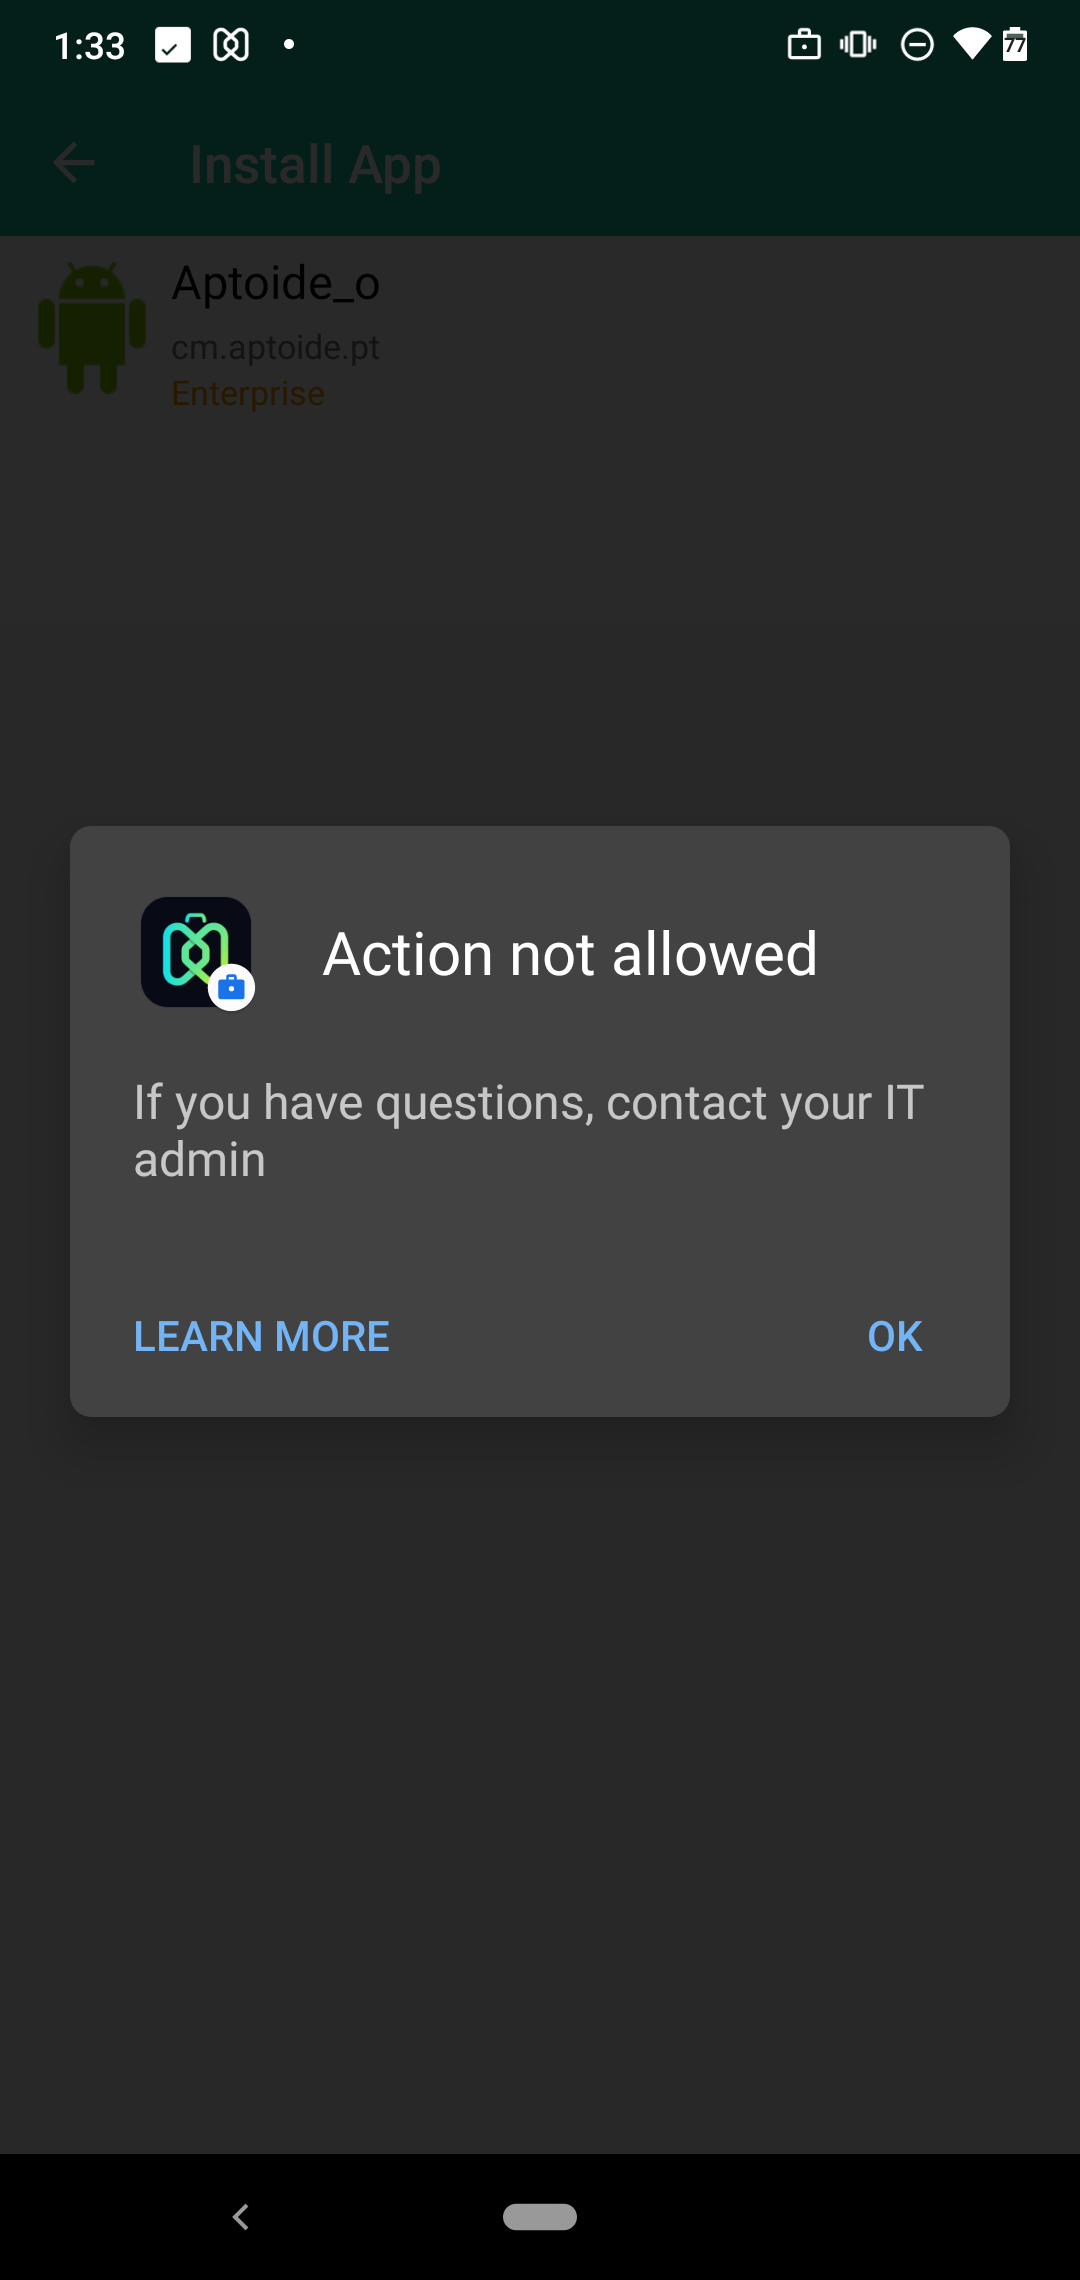 Action not allowed